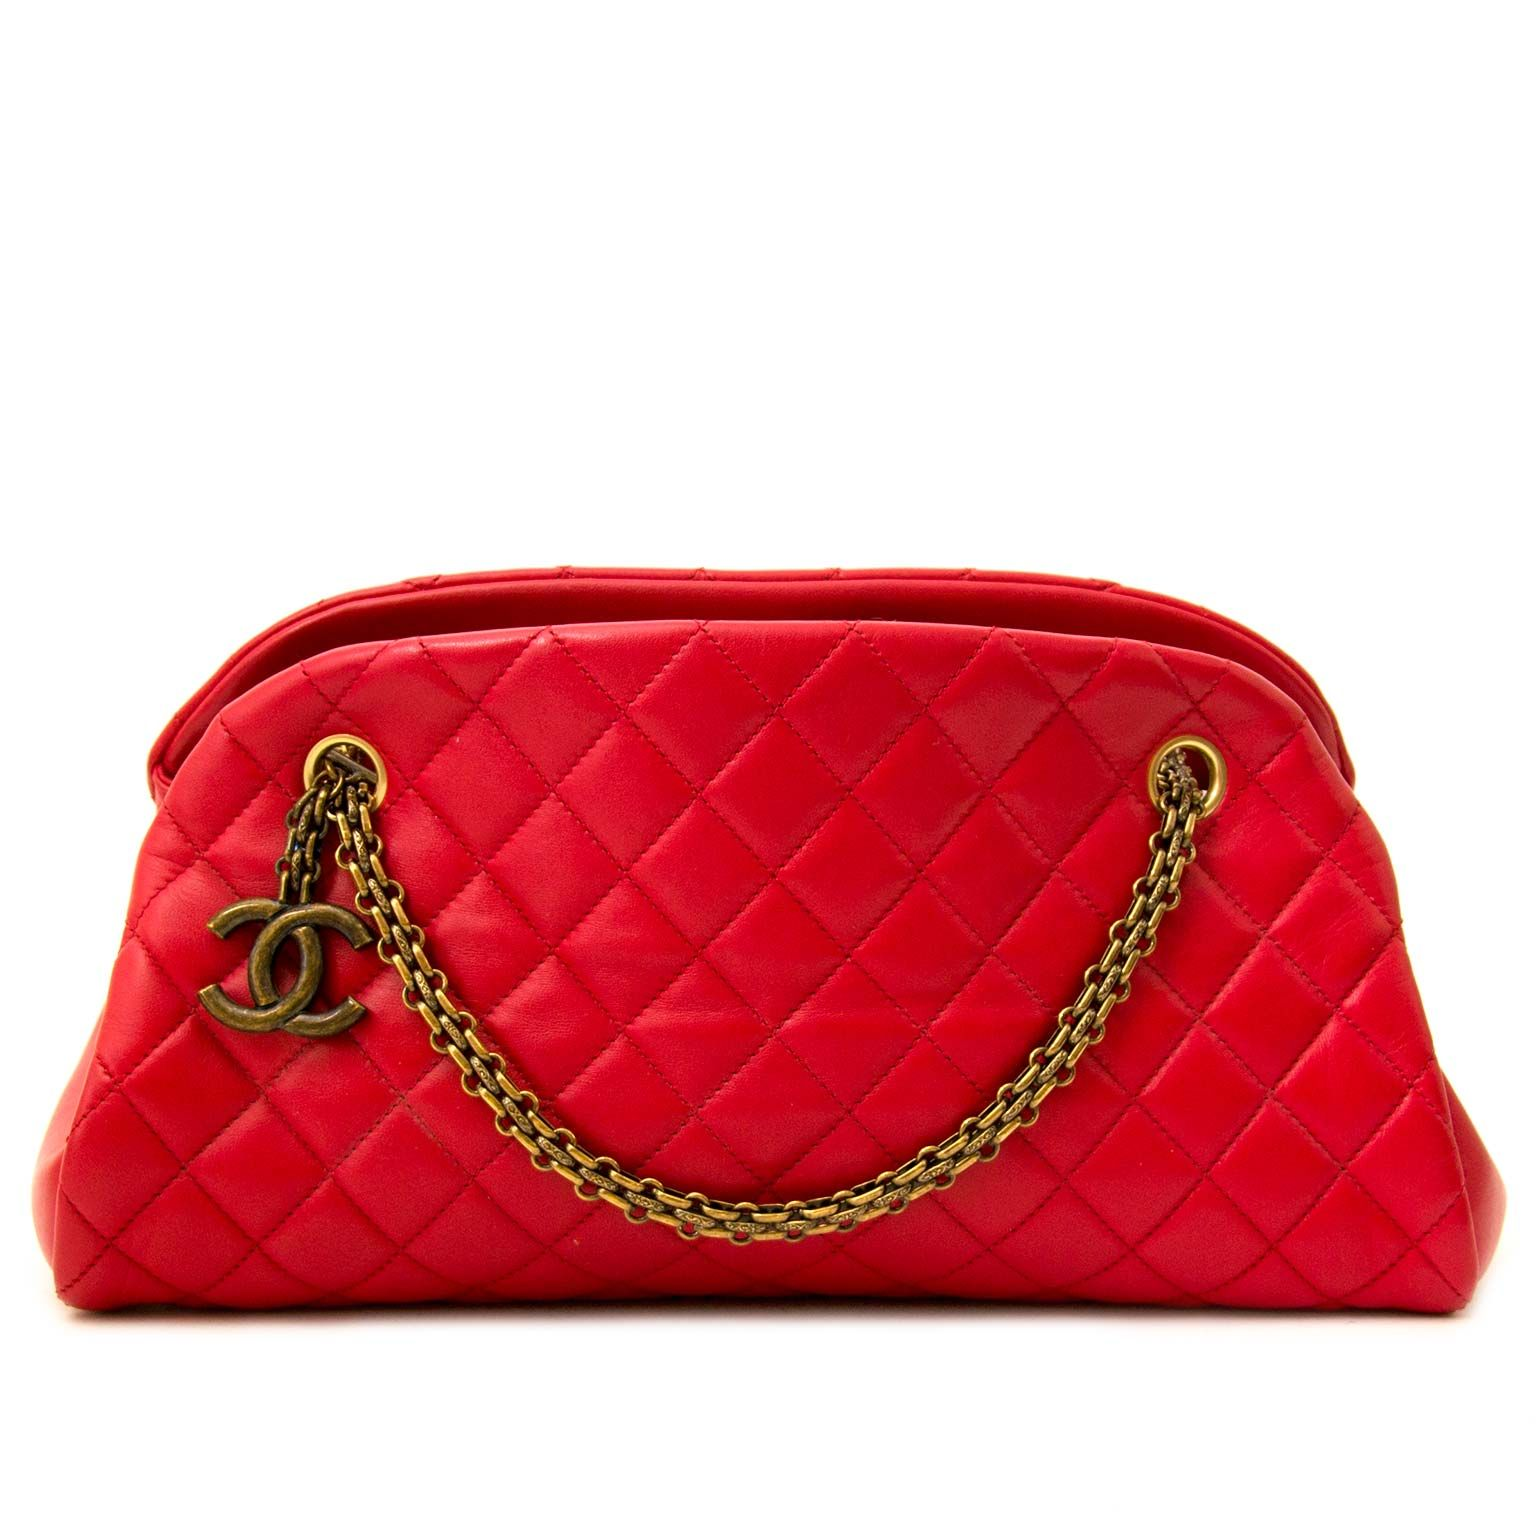 89b3076e373d Chanel Red